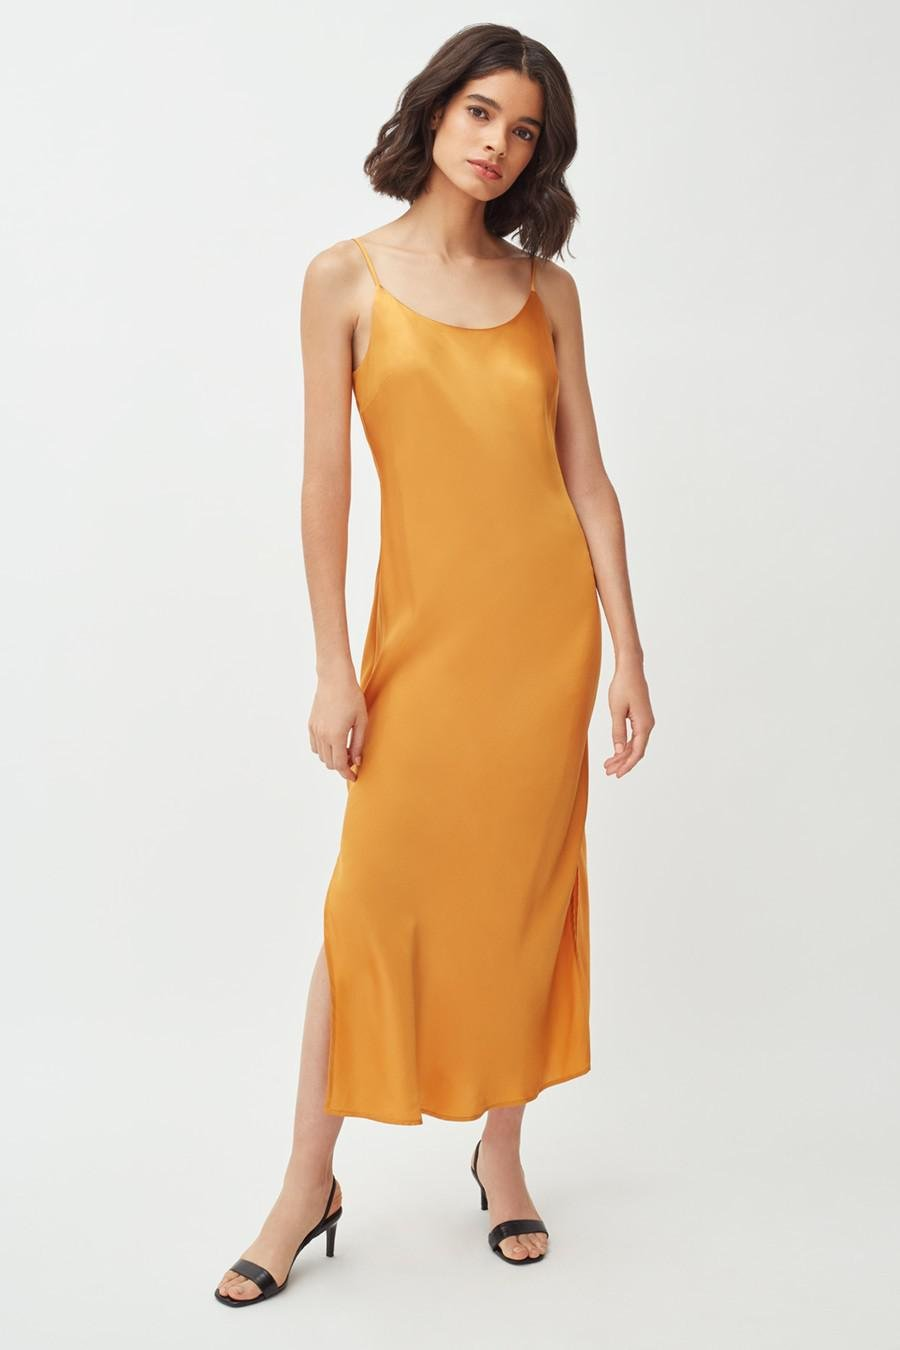 Women's Charmeuse Slip Dress in Citrine | Size: Large | Silk Charmeuse by Cuyana 1